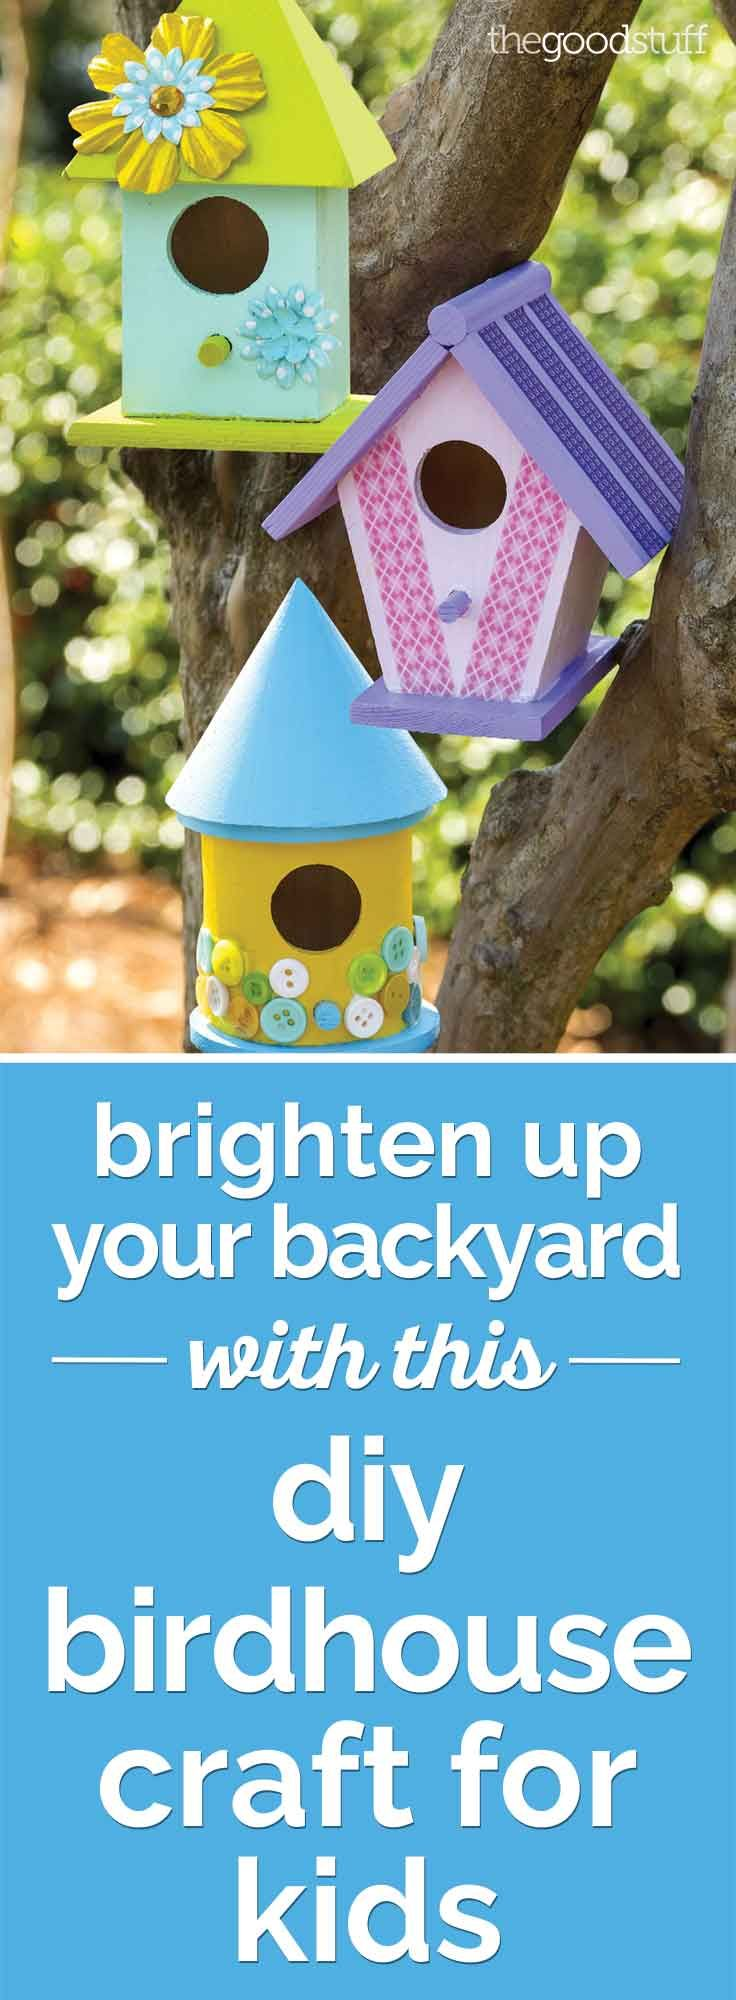 Simple and fun craft idea for the kids!